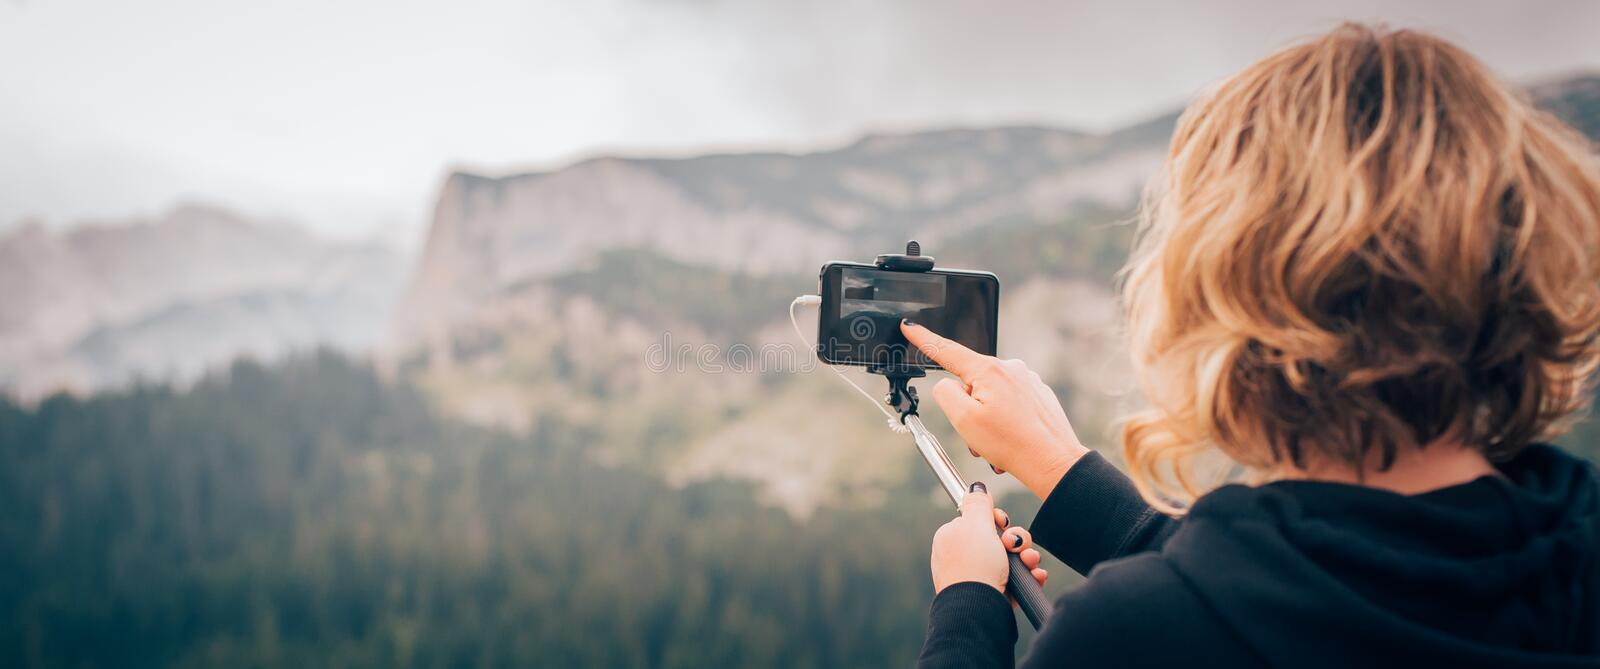 Woman taking panoramic picture of mountain landscape. Selfie photo stick stock image